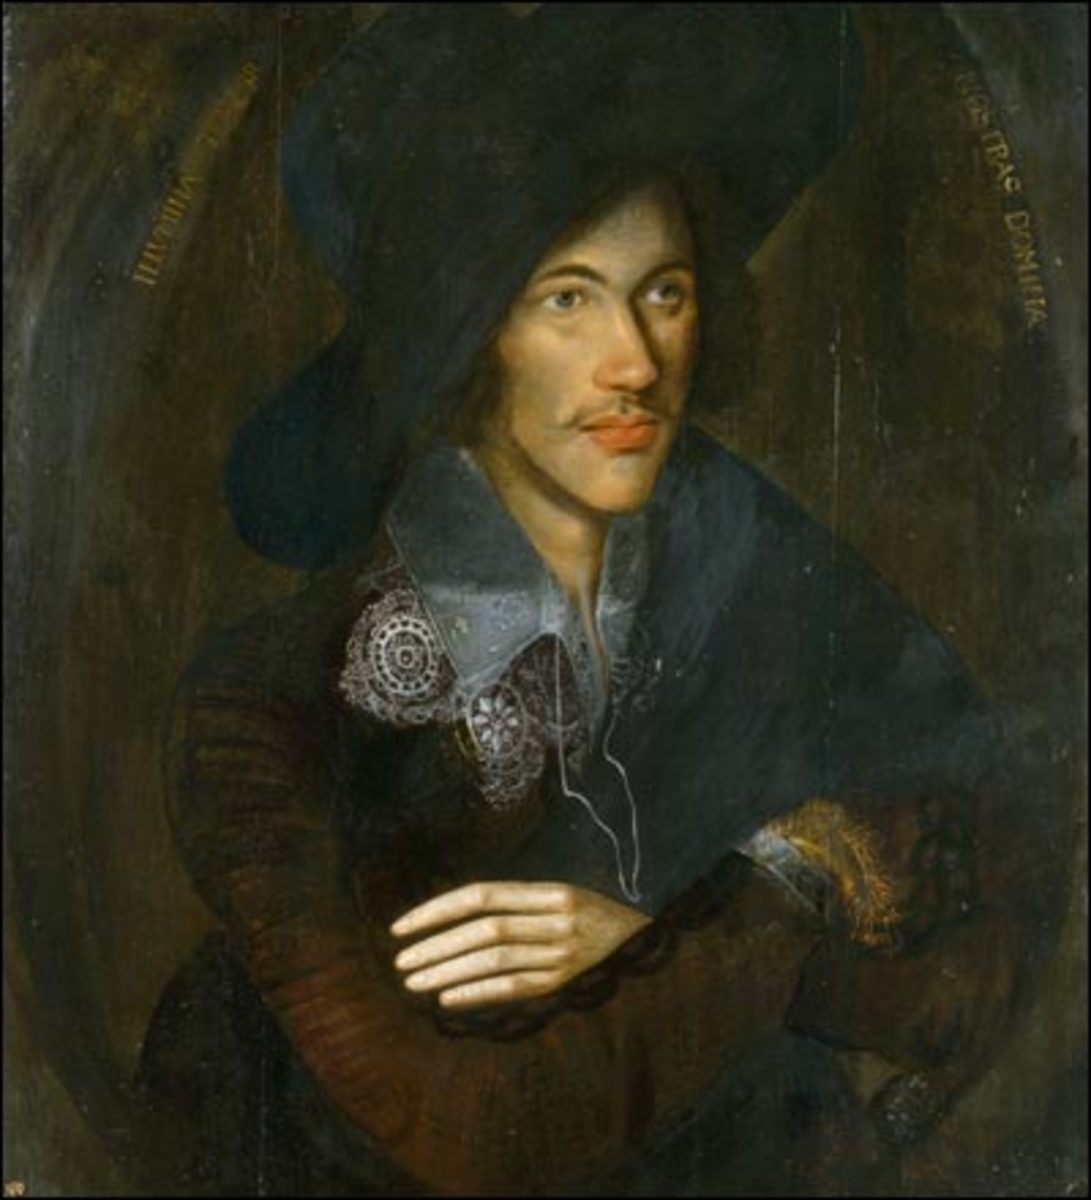 Incorporating the Corporeal: John Donne's View of Body and Soul